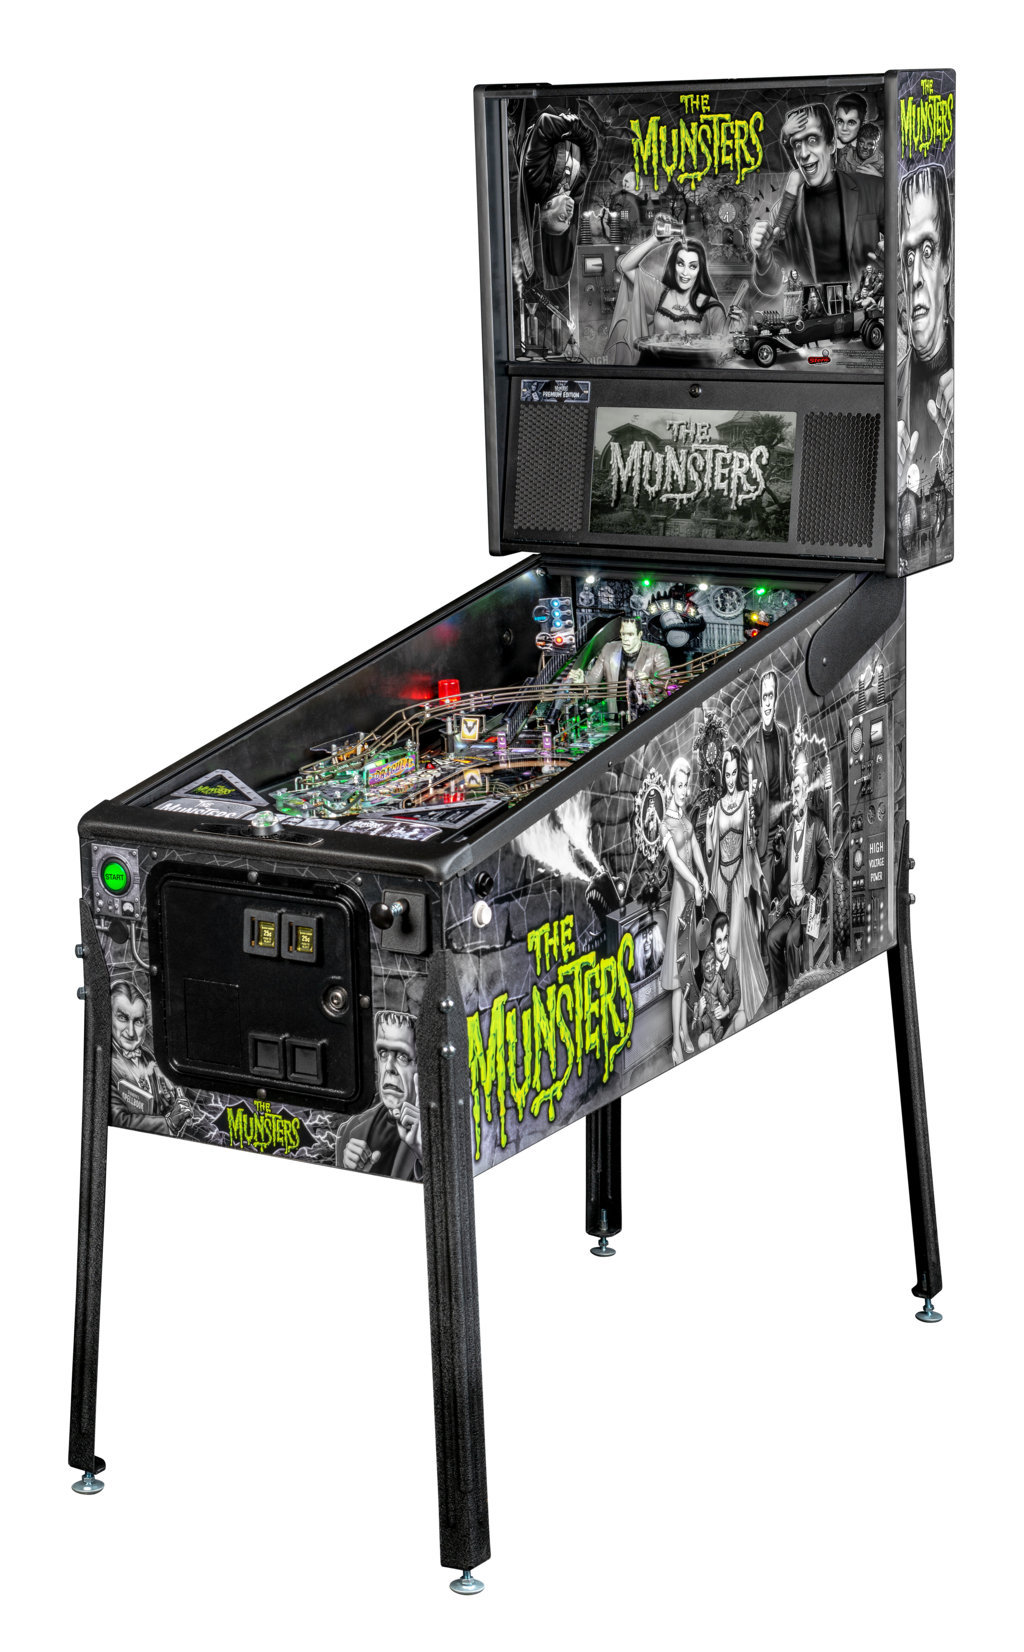 Munsters Premium Cabinet LF mini